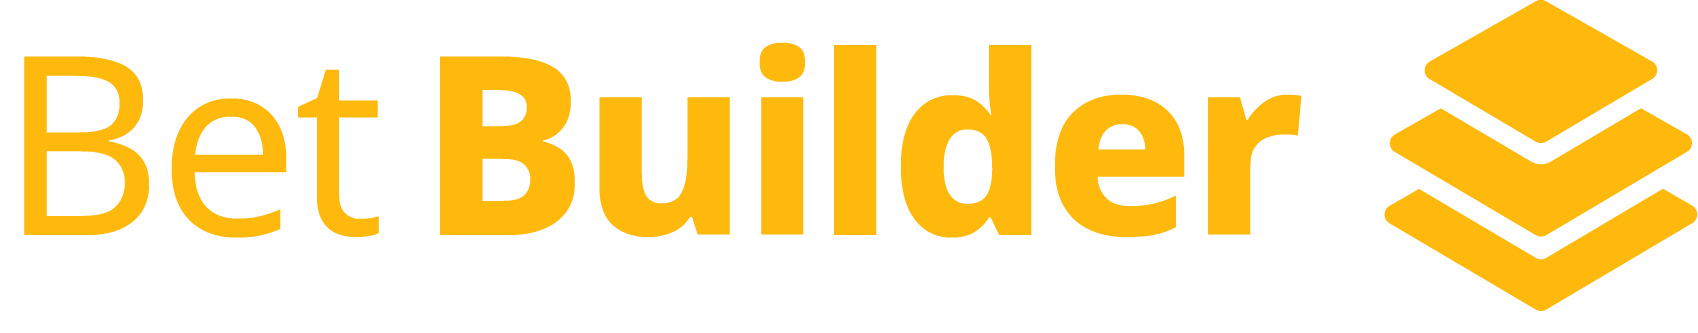 Bet-Builder-Yellow.png